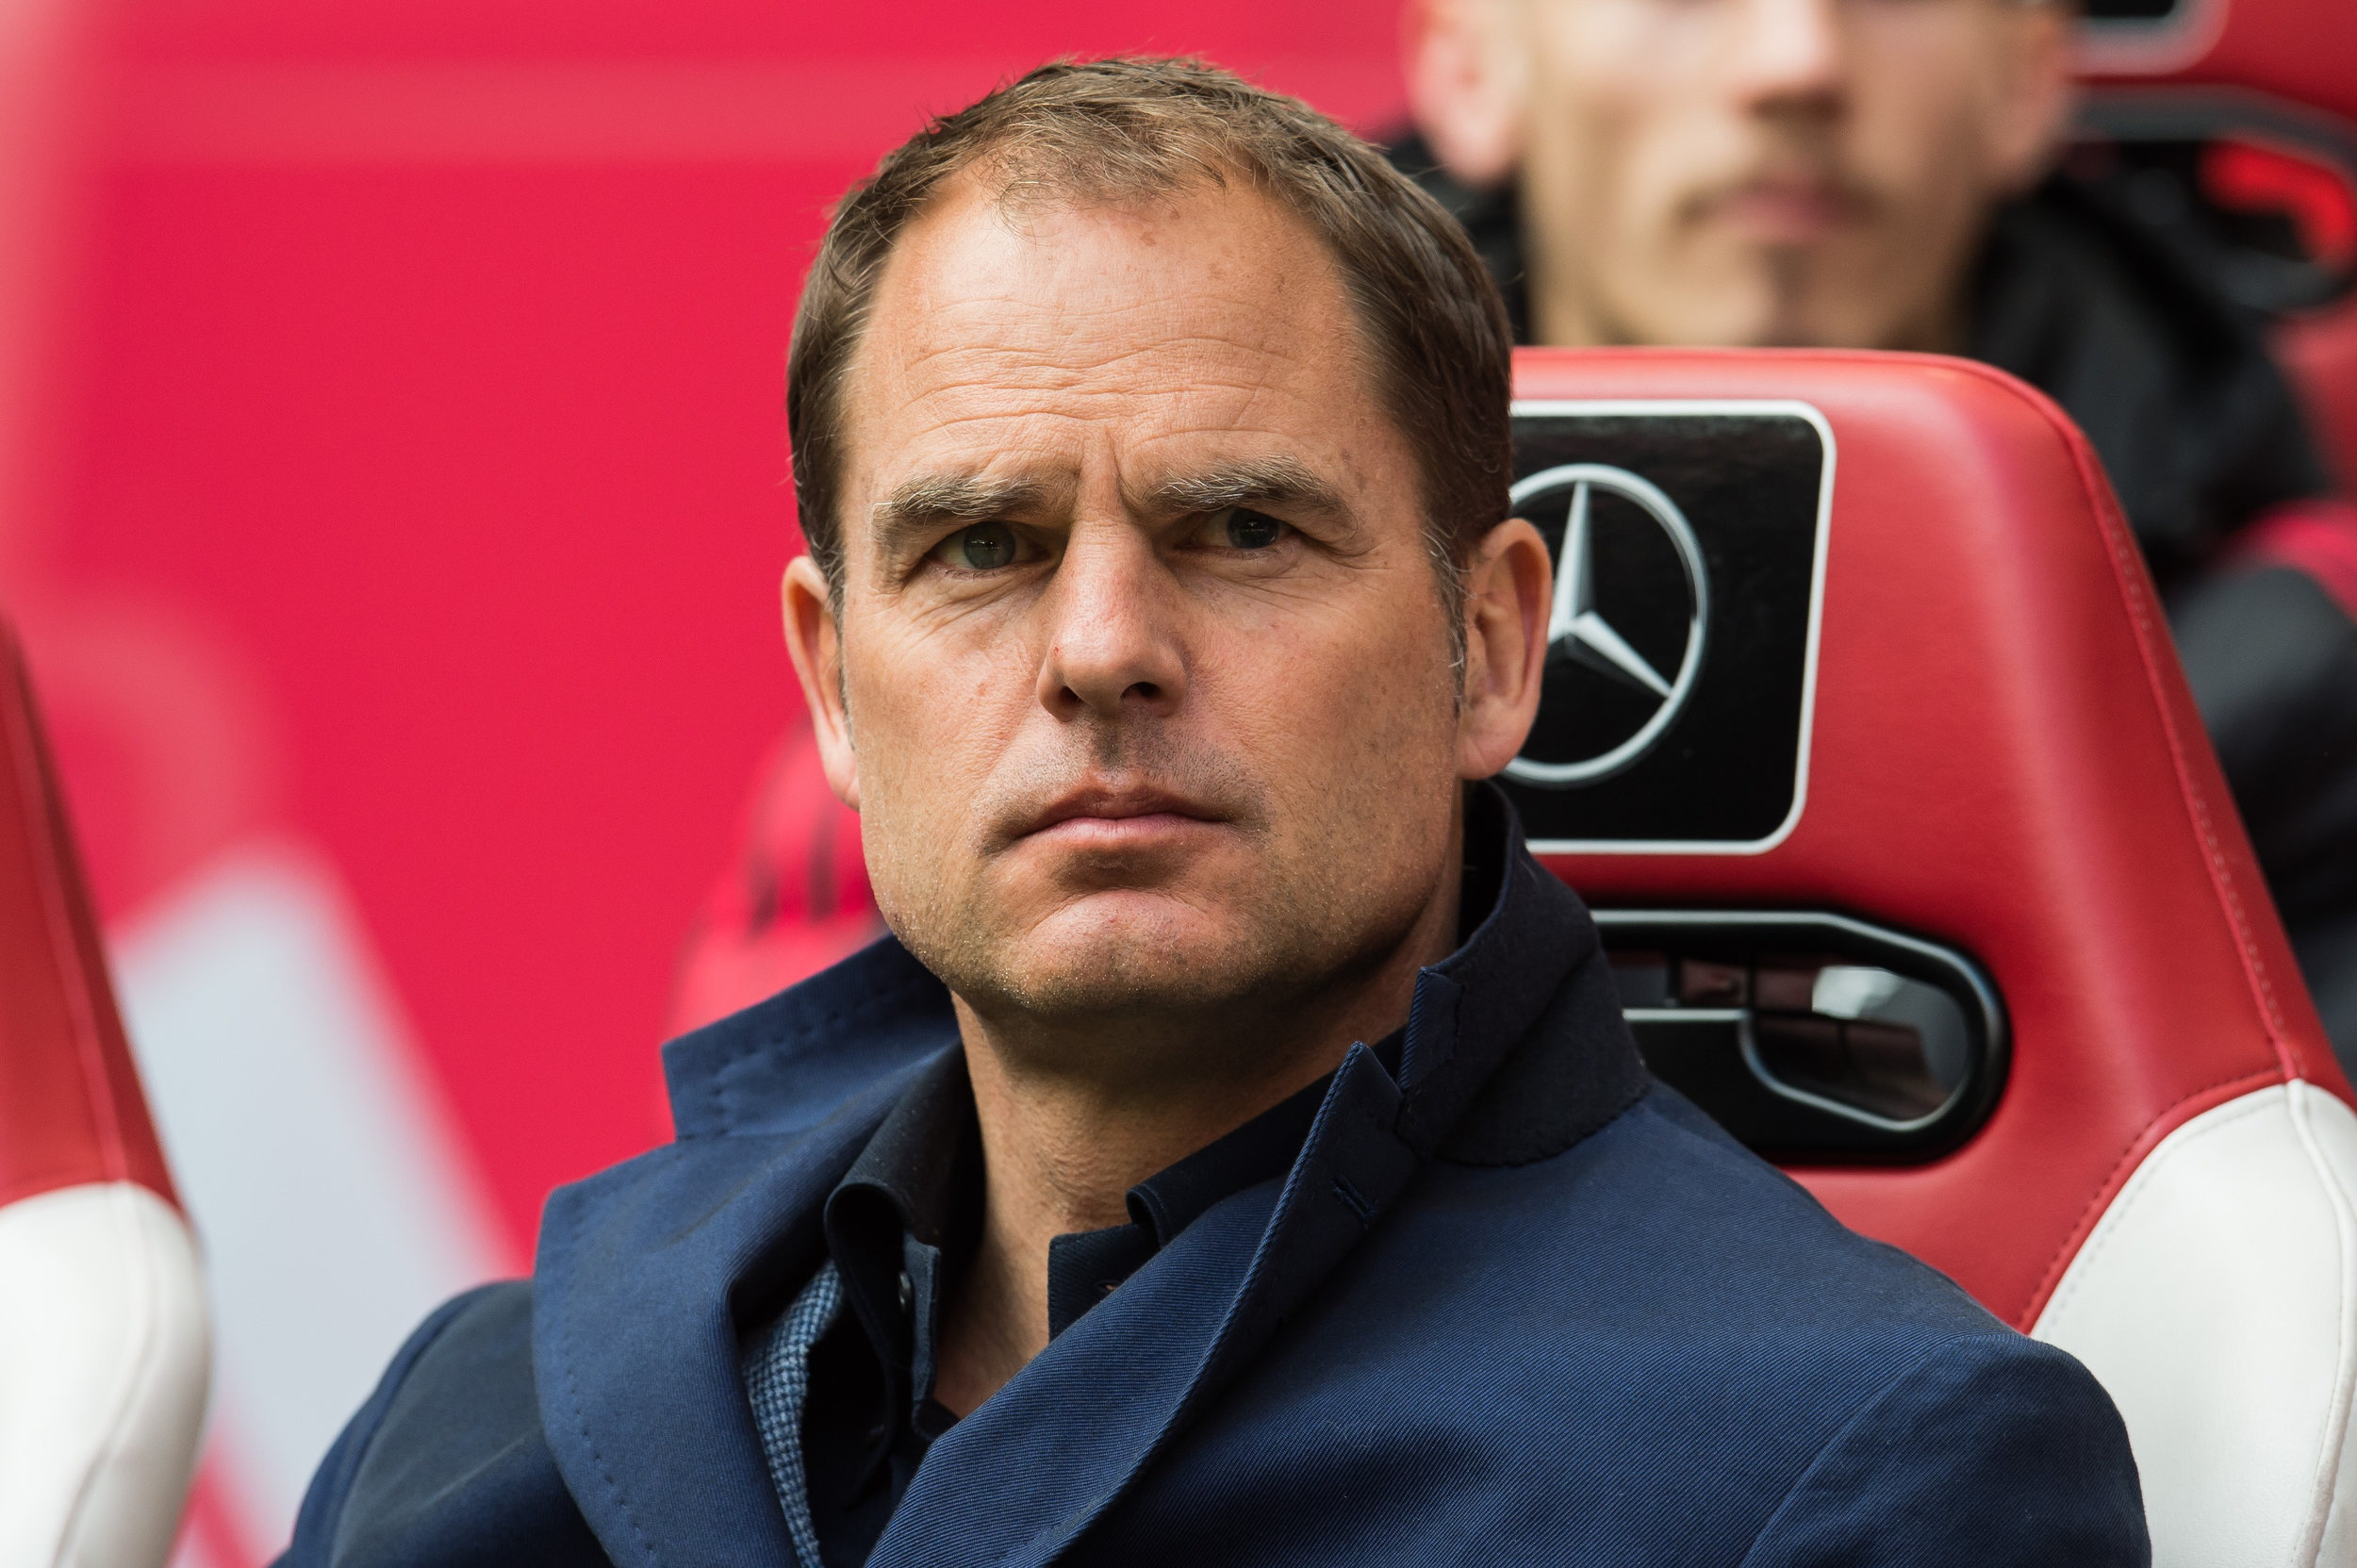 Frank de Boer's spell in charge at Ajax ended disappointingly